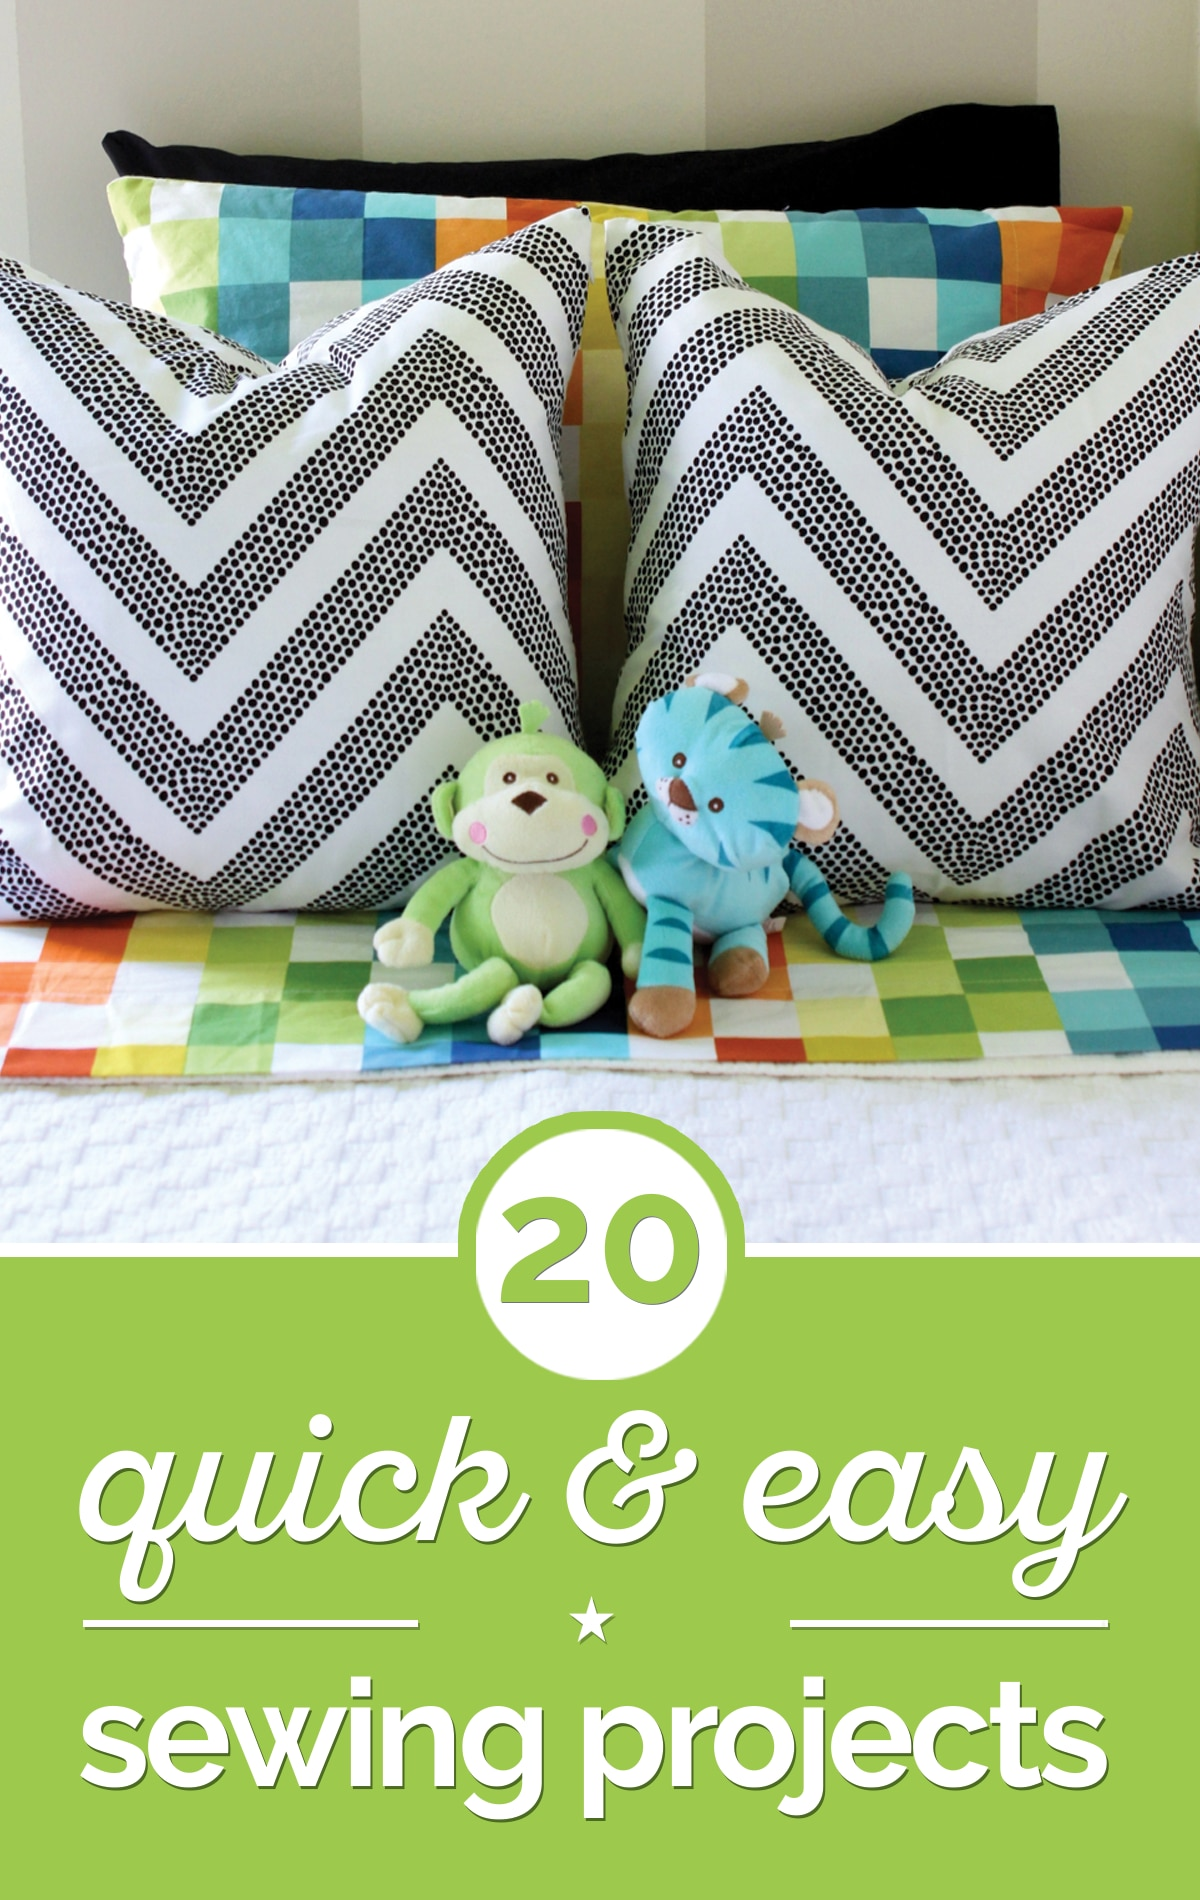 20 Quick & Easy Sewing Projects for Beginners [Tutorials] | thegoodstuff